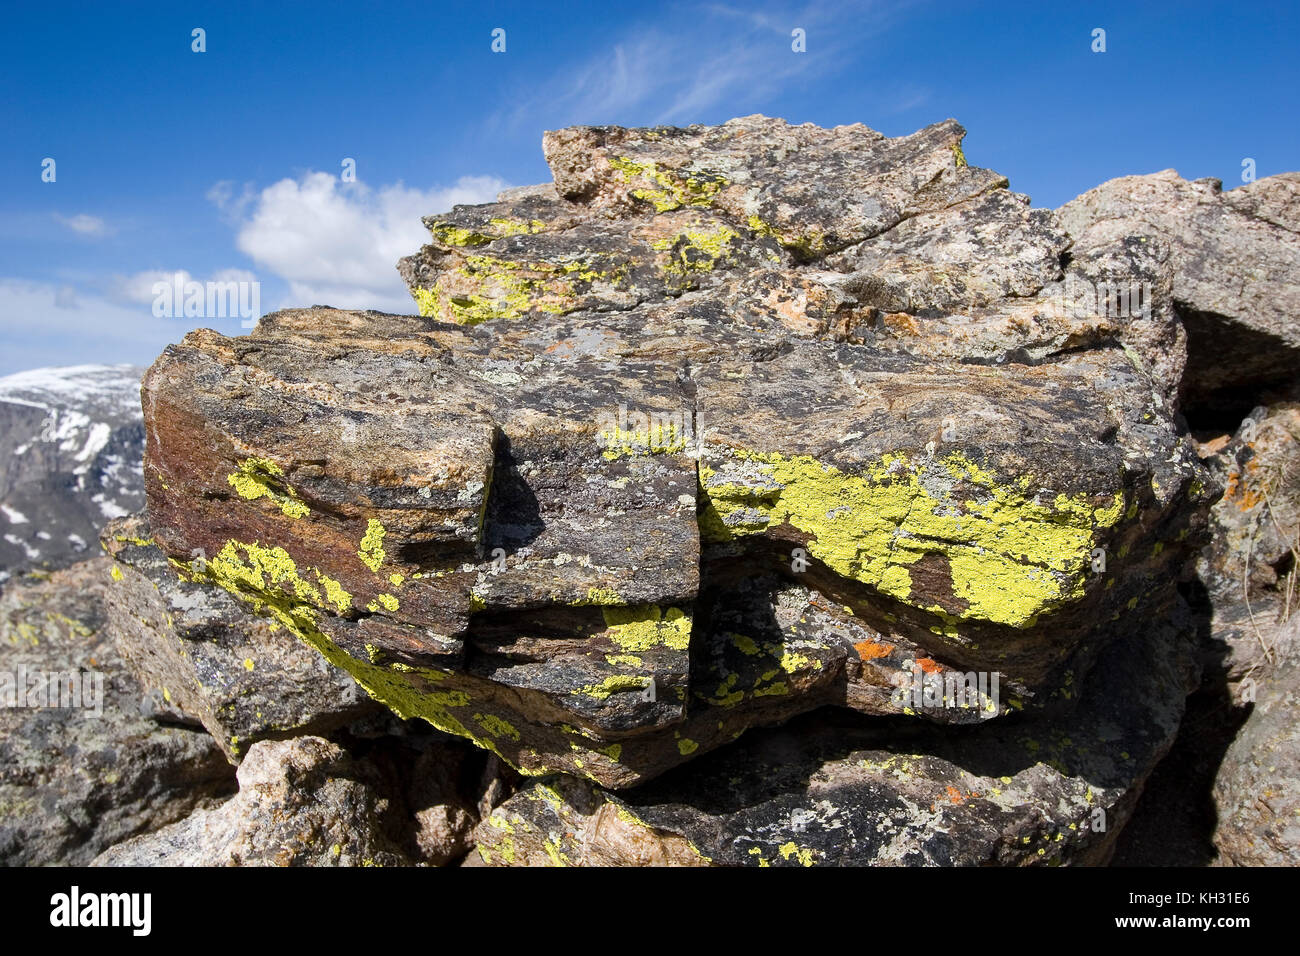 Lichens on rock at 12110 feet elevation rock cut rocky mountain lichens on rock at 12110 feet elevation rock cut rocky mountain national park colorado sciox Image collections